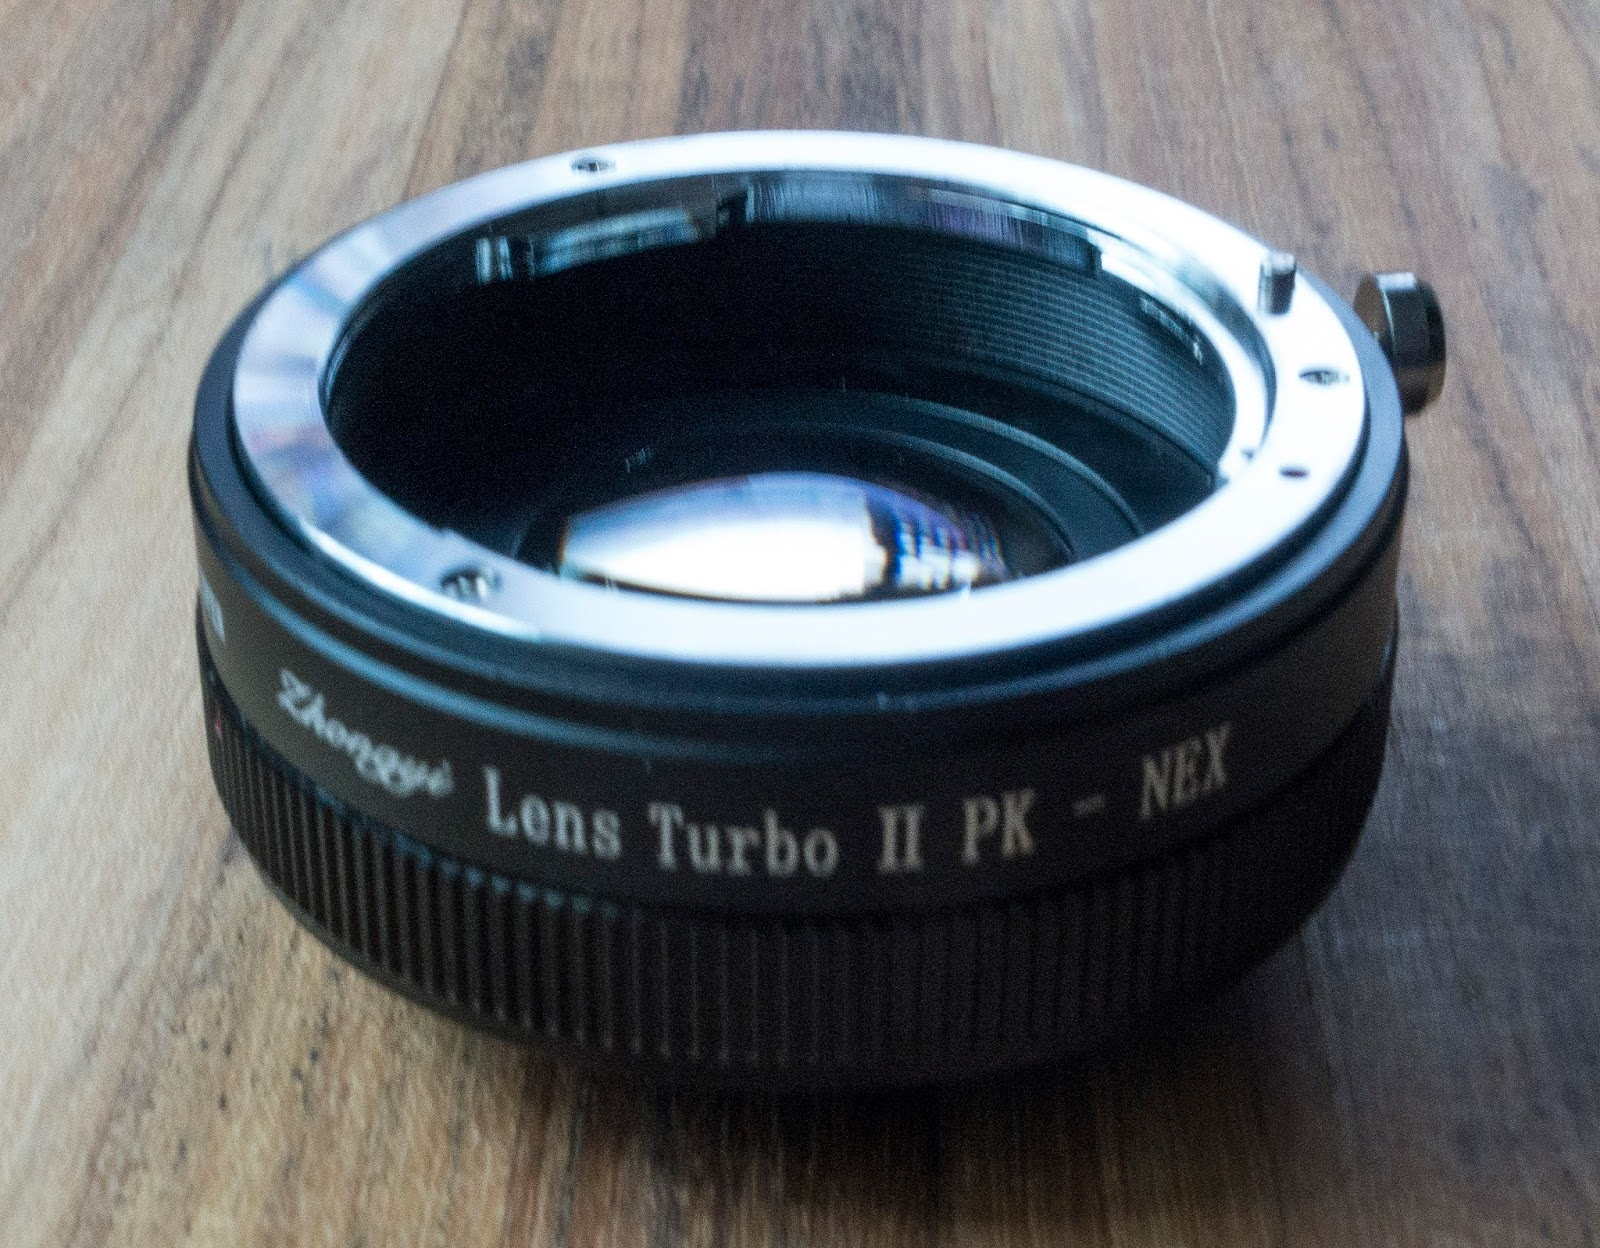 Playing With Lenses: The good side of an OM (Original Manufacturer